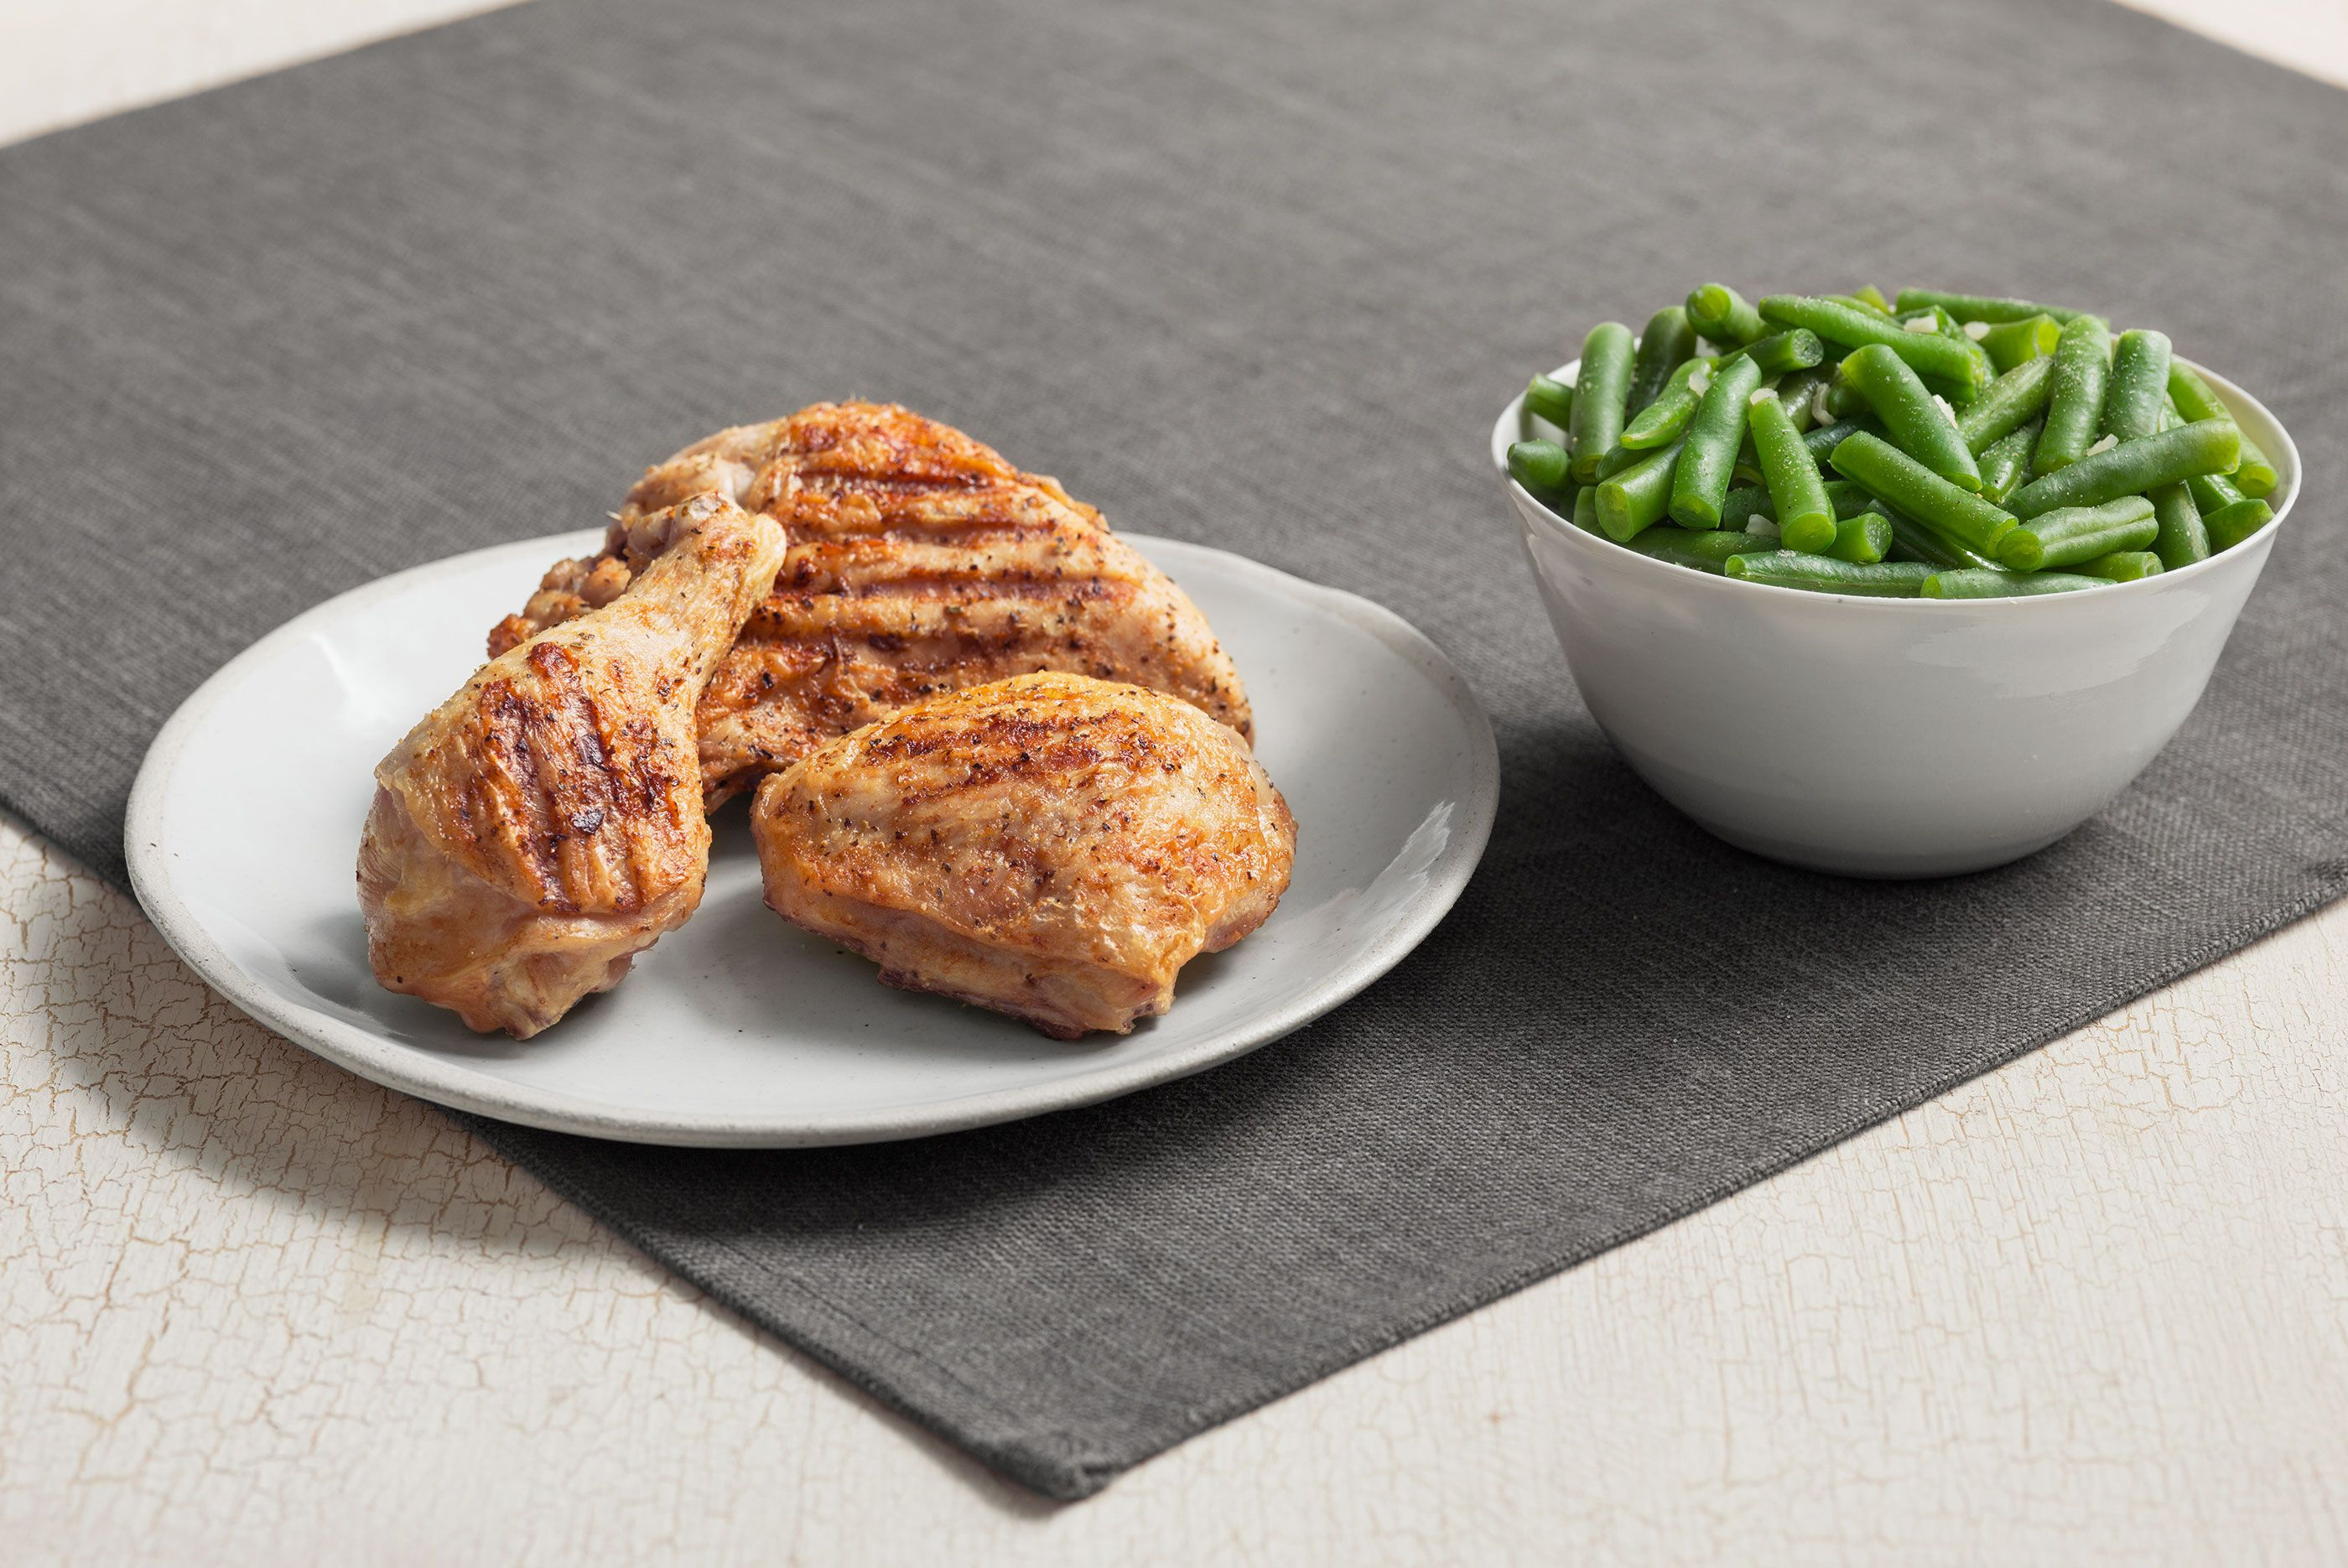 Kentucky Fried Chicken Grilled Chicken Breast with Green Beans